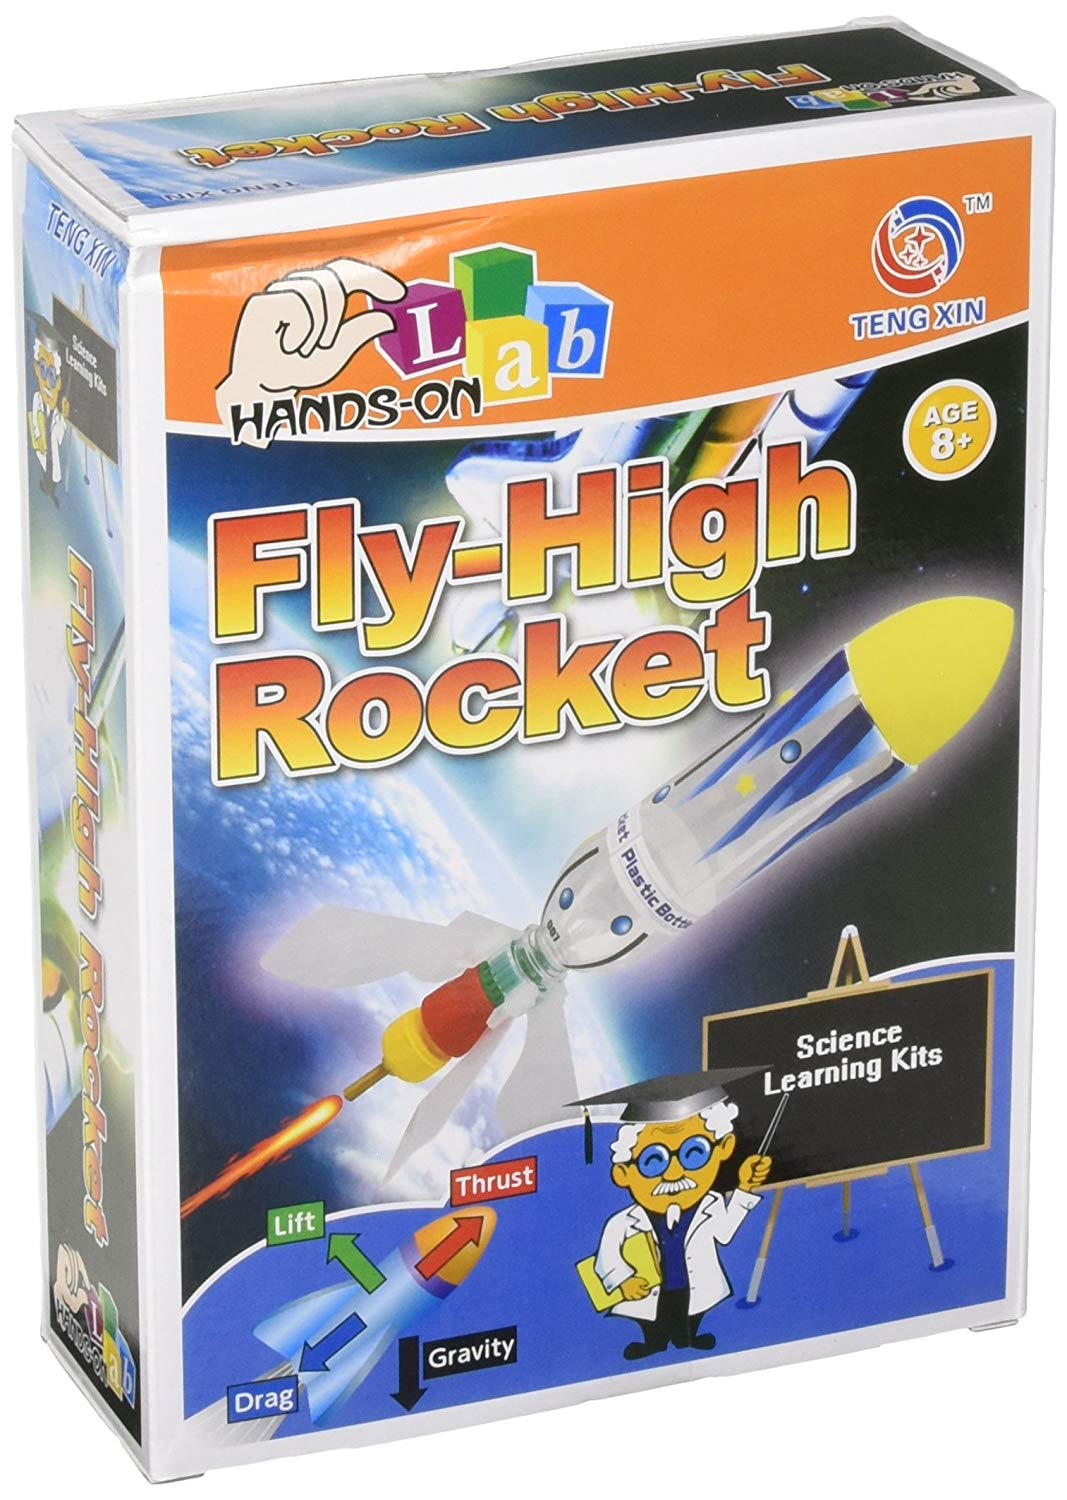 Hands-On-Labs Fly High Rocket Science Kit